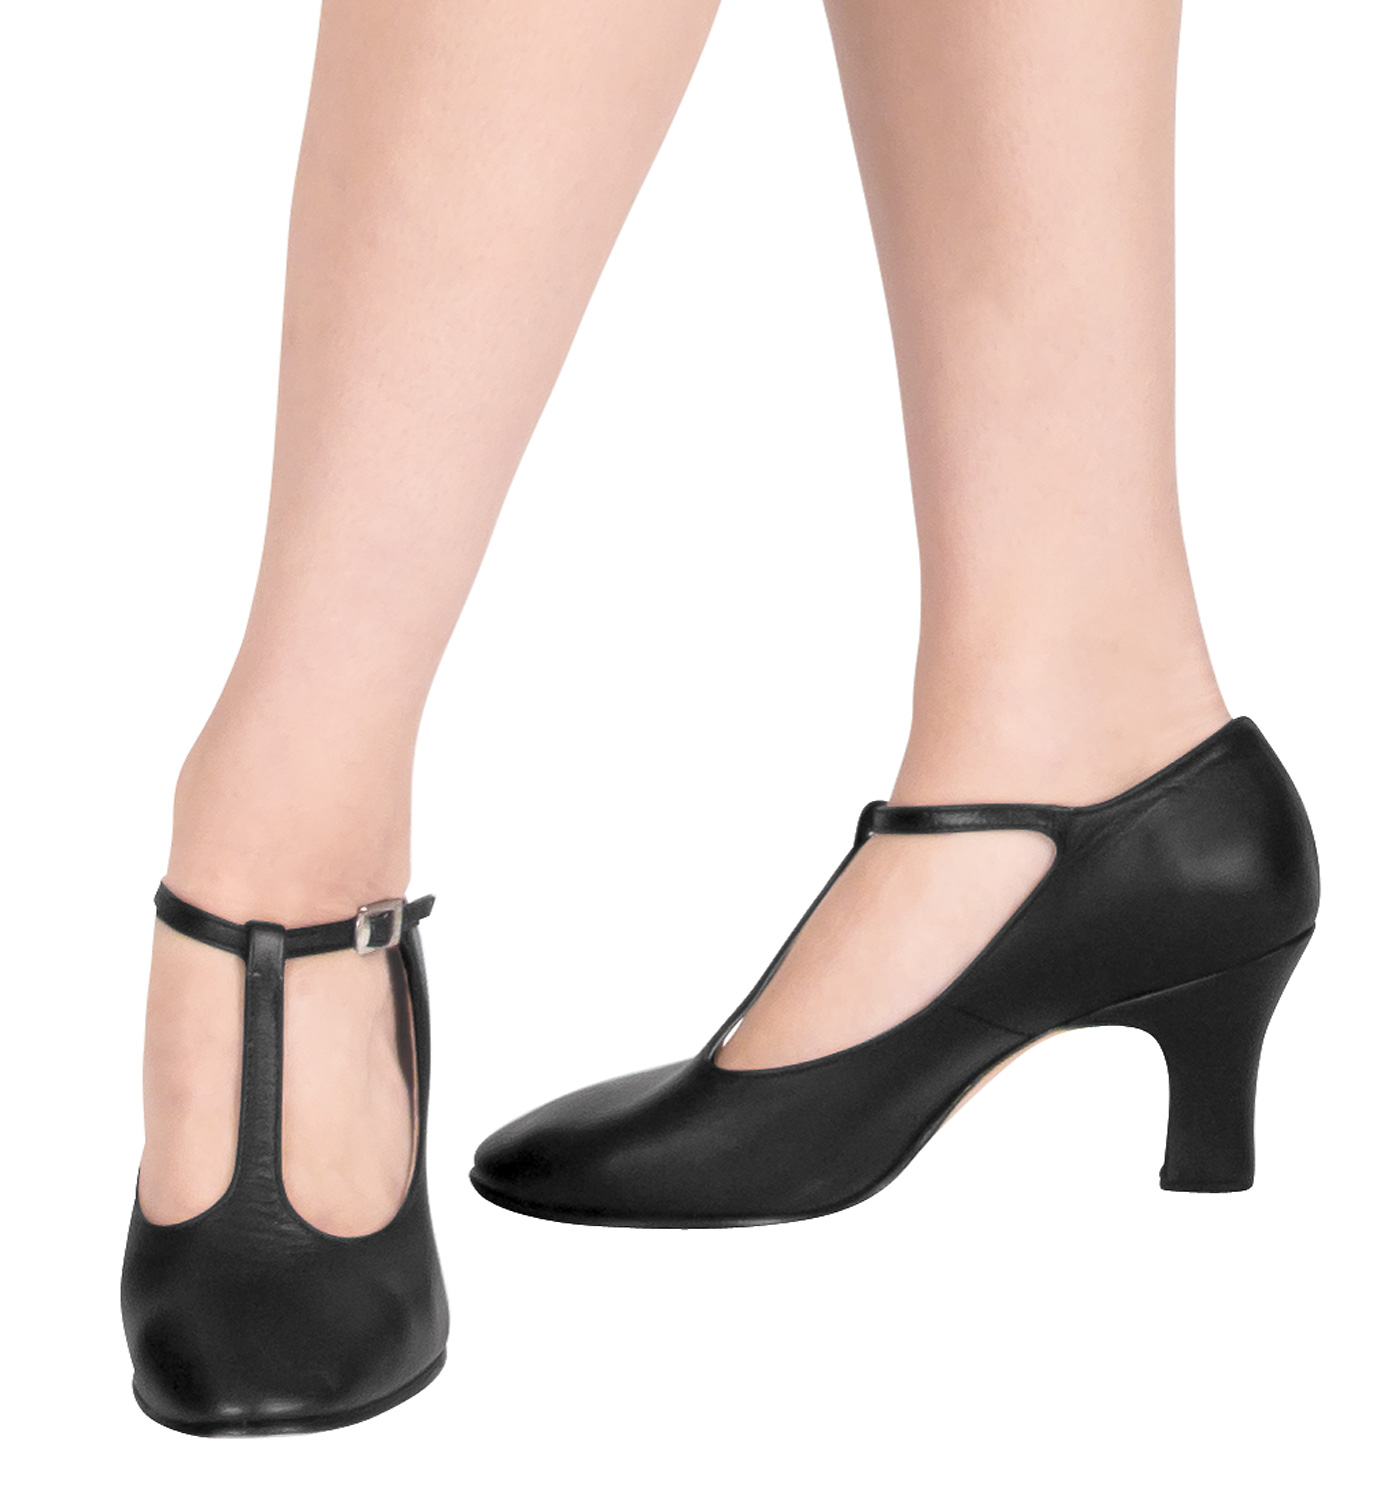 trendy trends 1 very fine shoes 72 wear moi 3 shop by color shop by